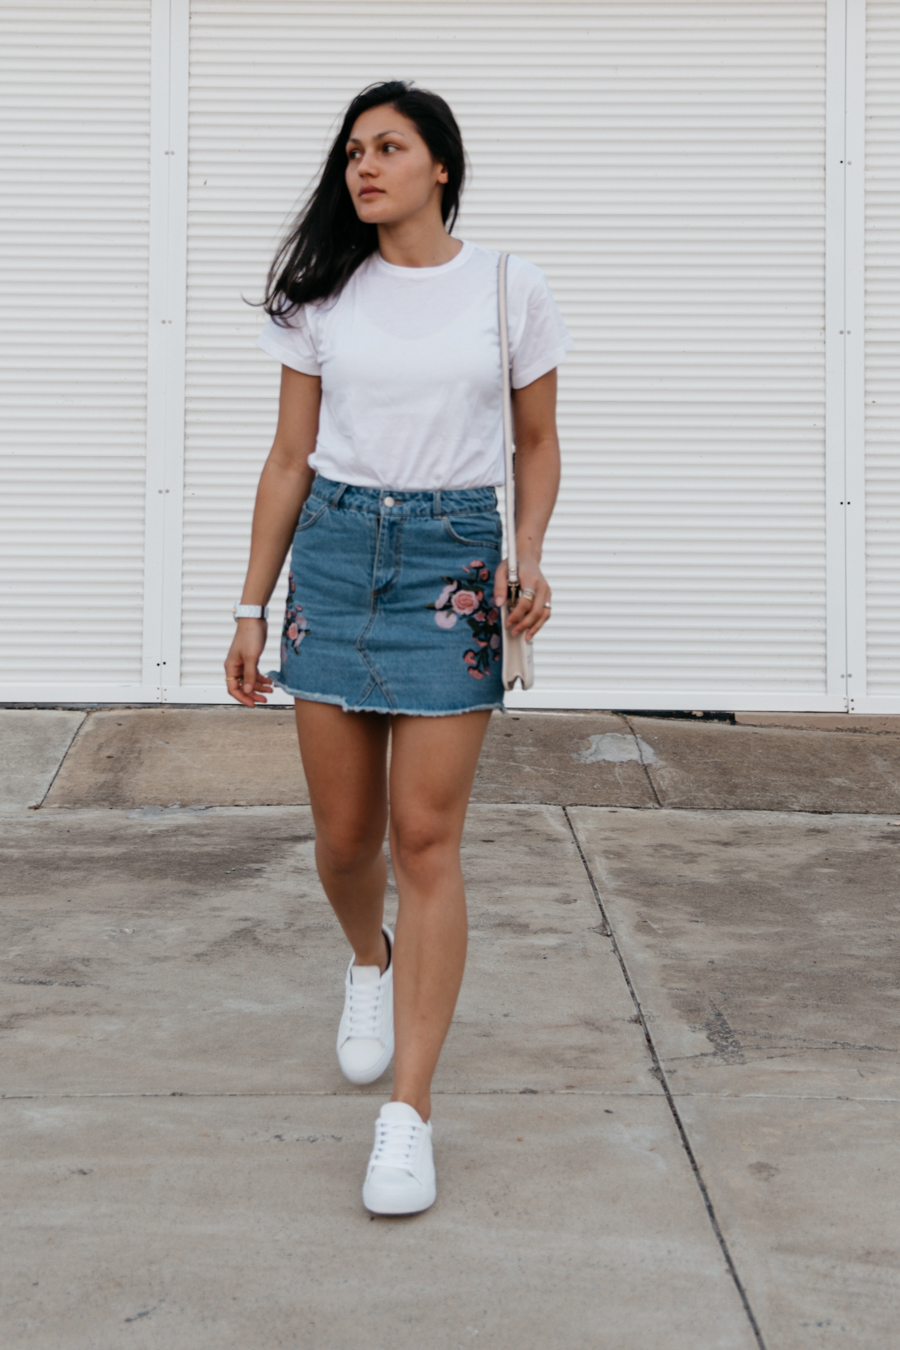 Denim skirt with white tee outfit. Perth blogger.